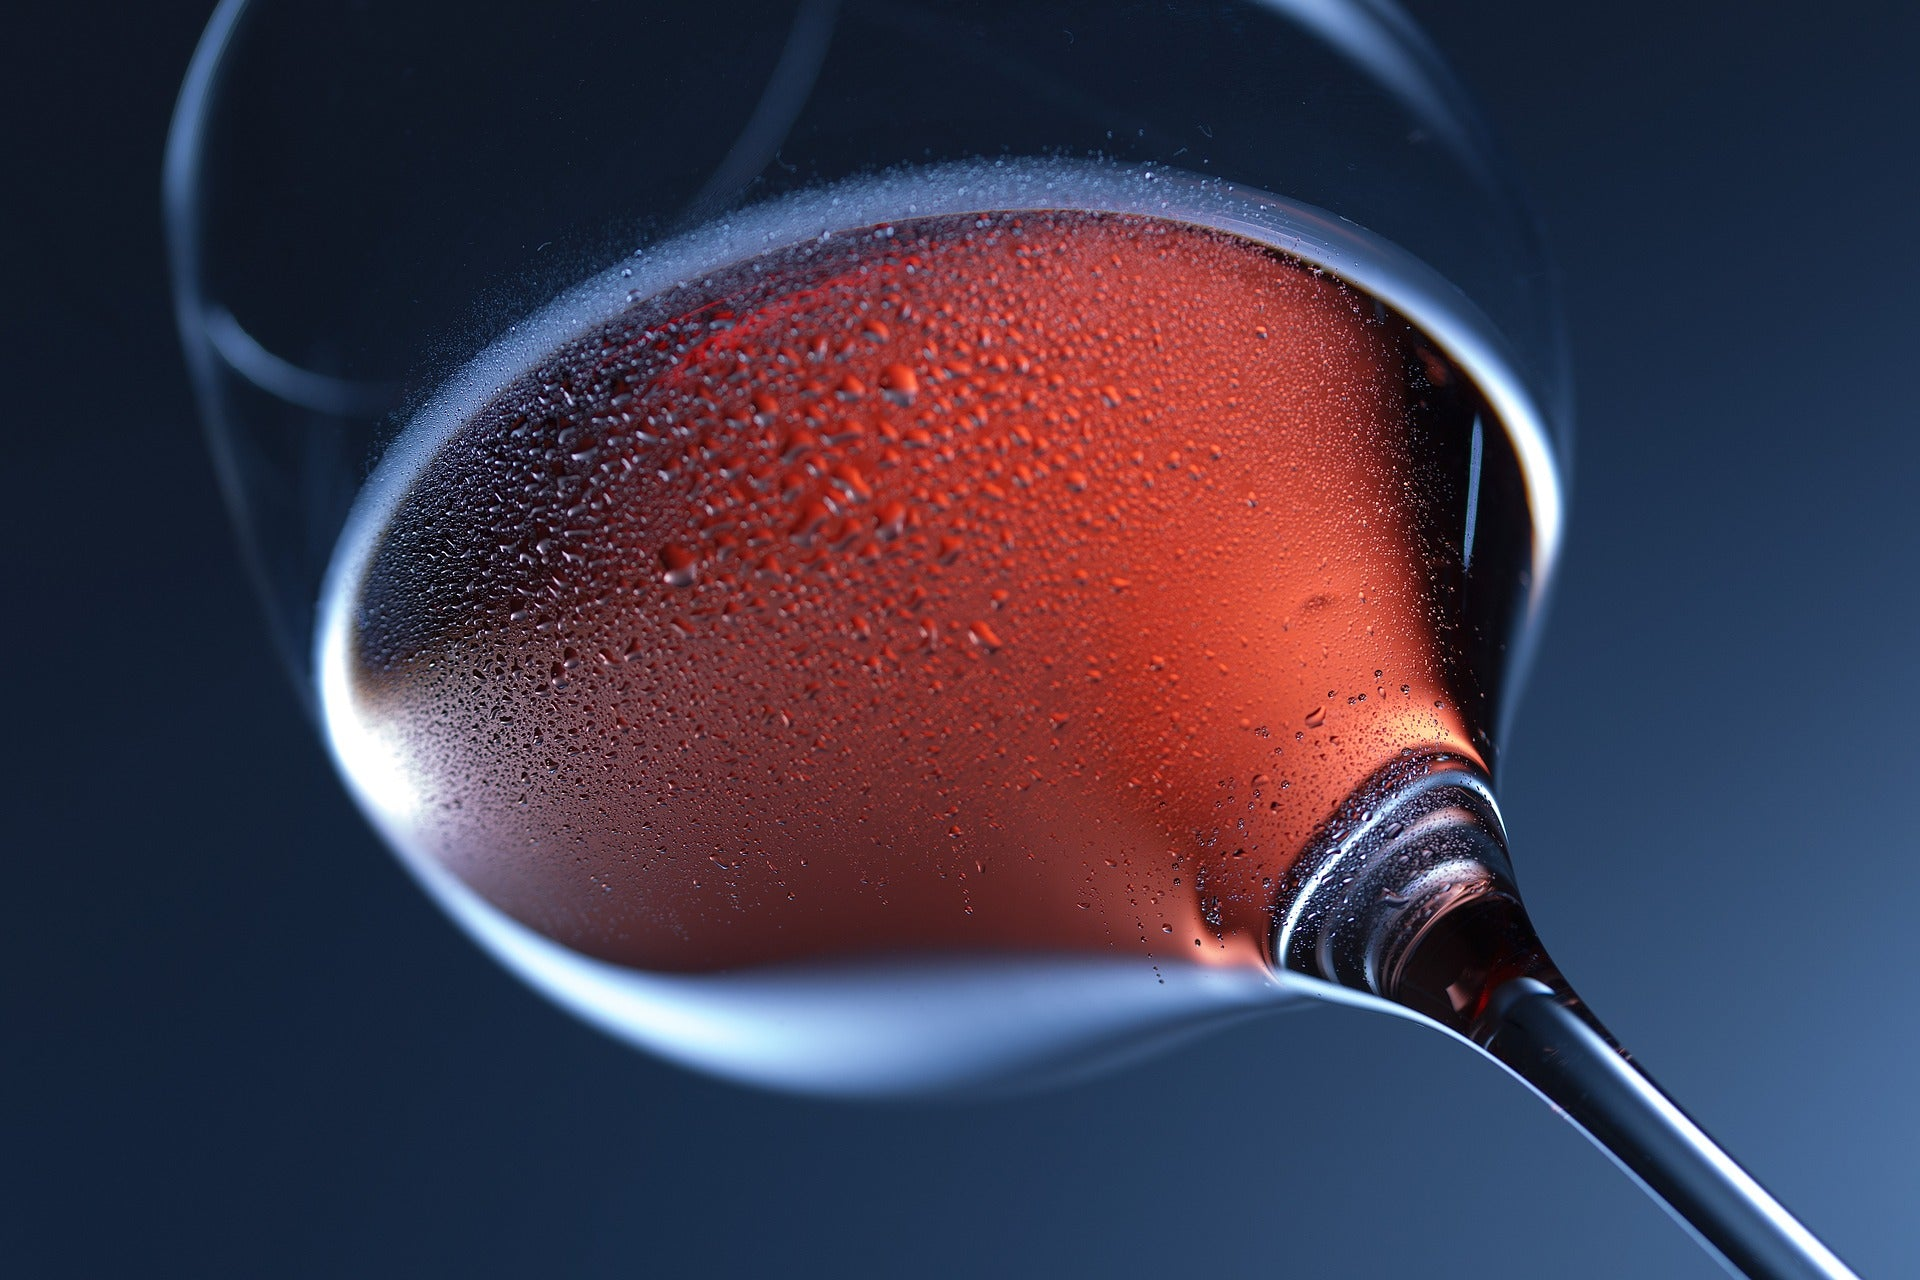 The Mini Guide to Rose Wine